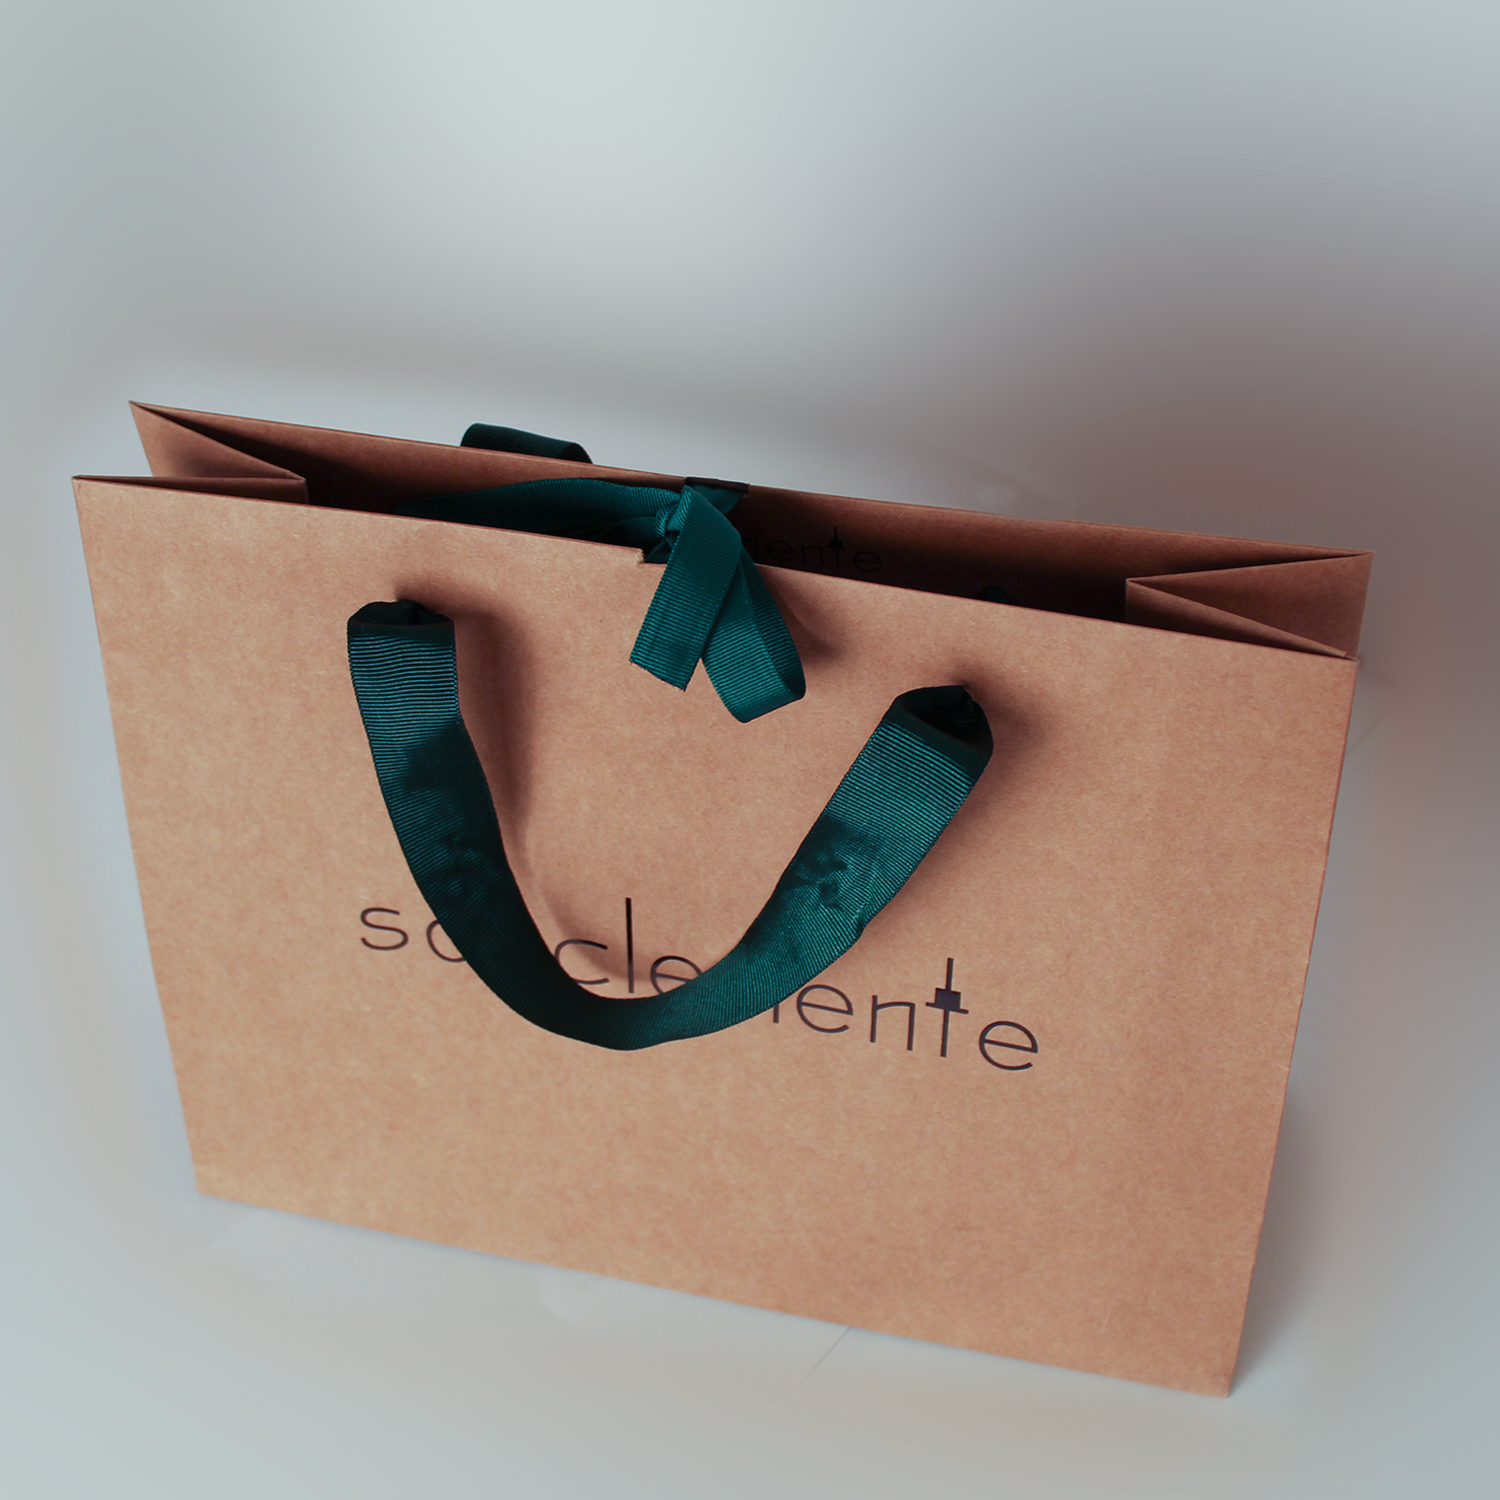 1 | Sanclemente | Shopping bag